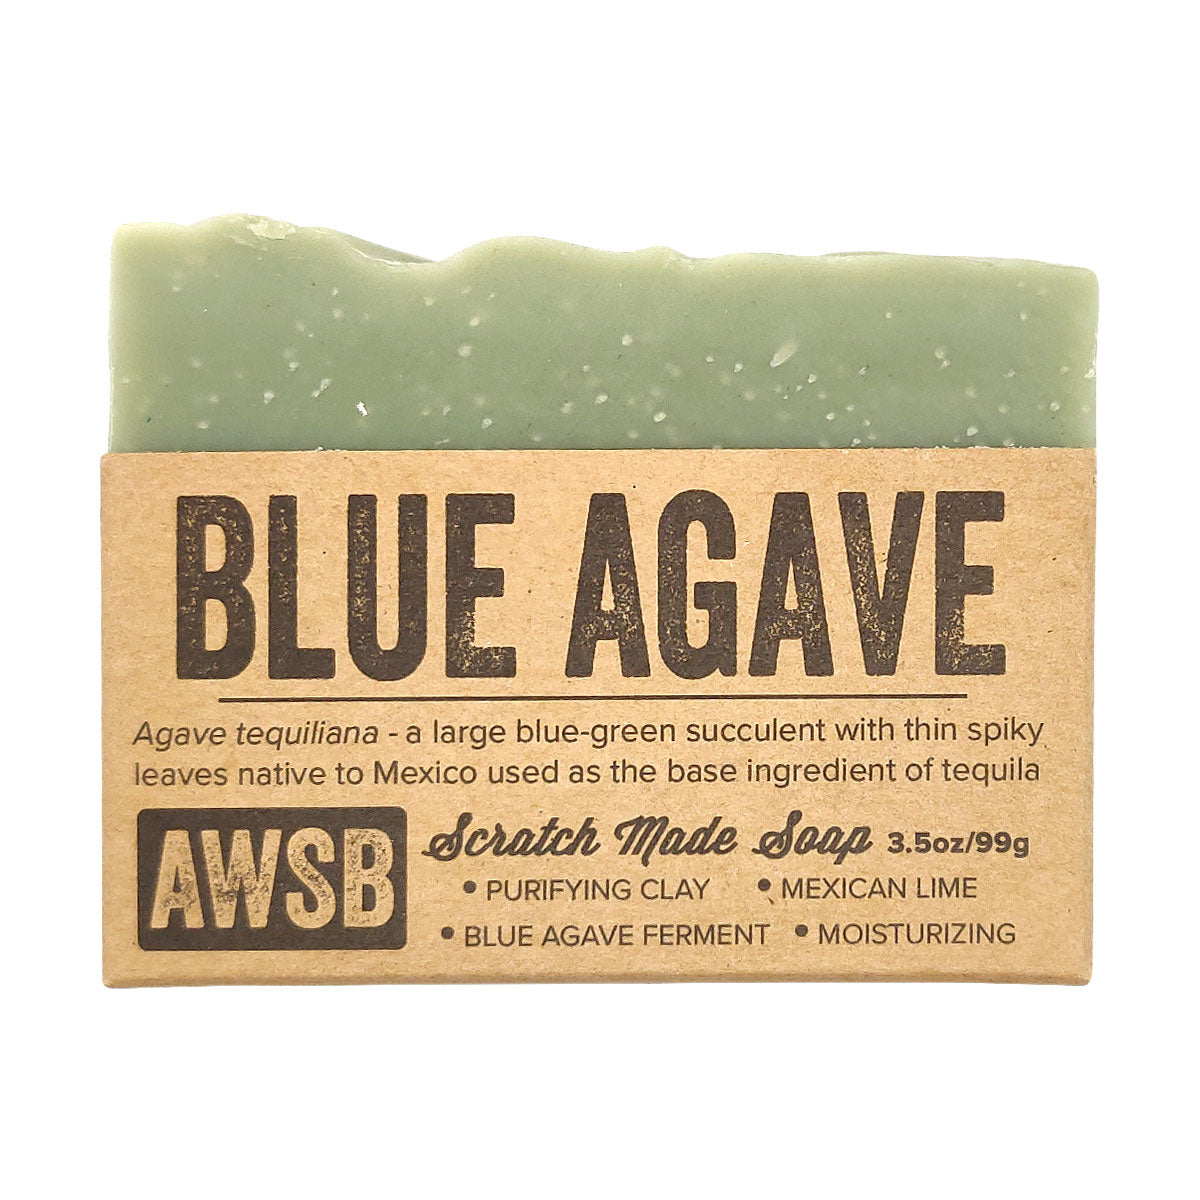 Blue Agave Soap for sale, Soap Bar, Handmade Soaps, Clean Scent, Sustainable Skincare, Vegan Cruelty Free, Face And Body, Bath Beauty, Natural Gift